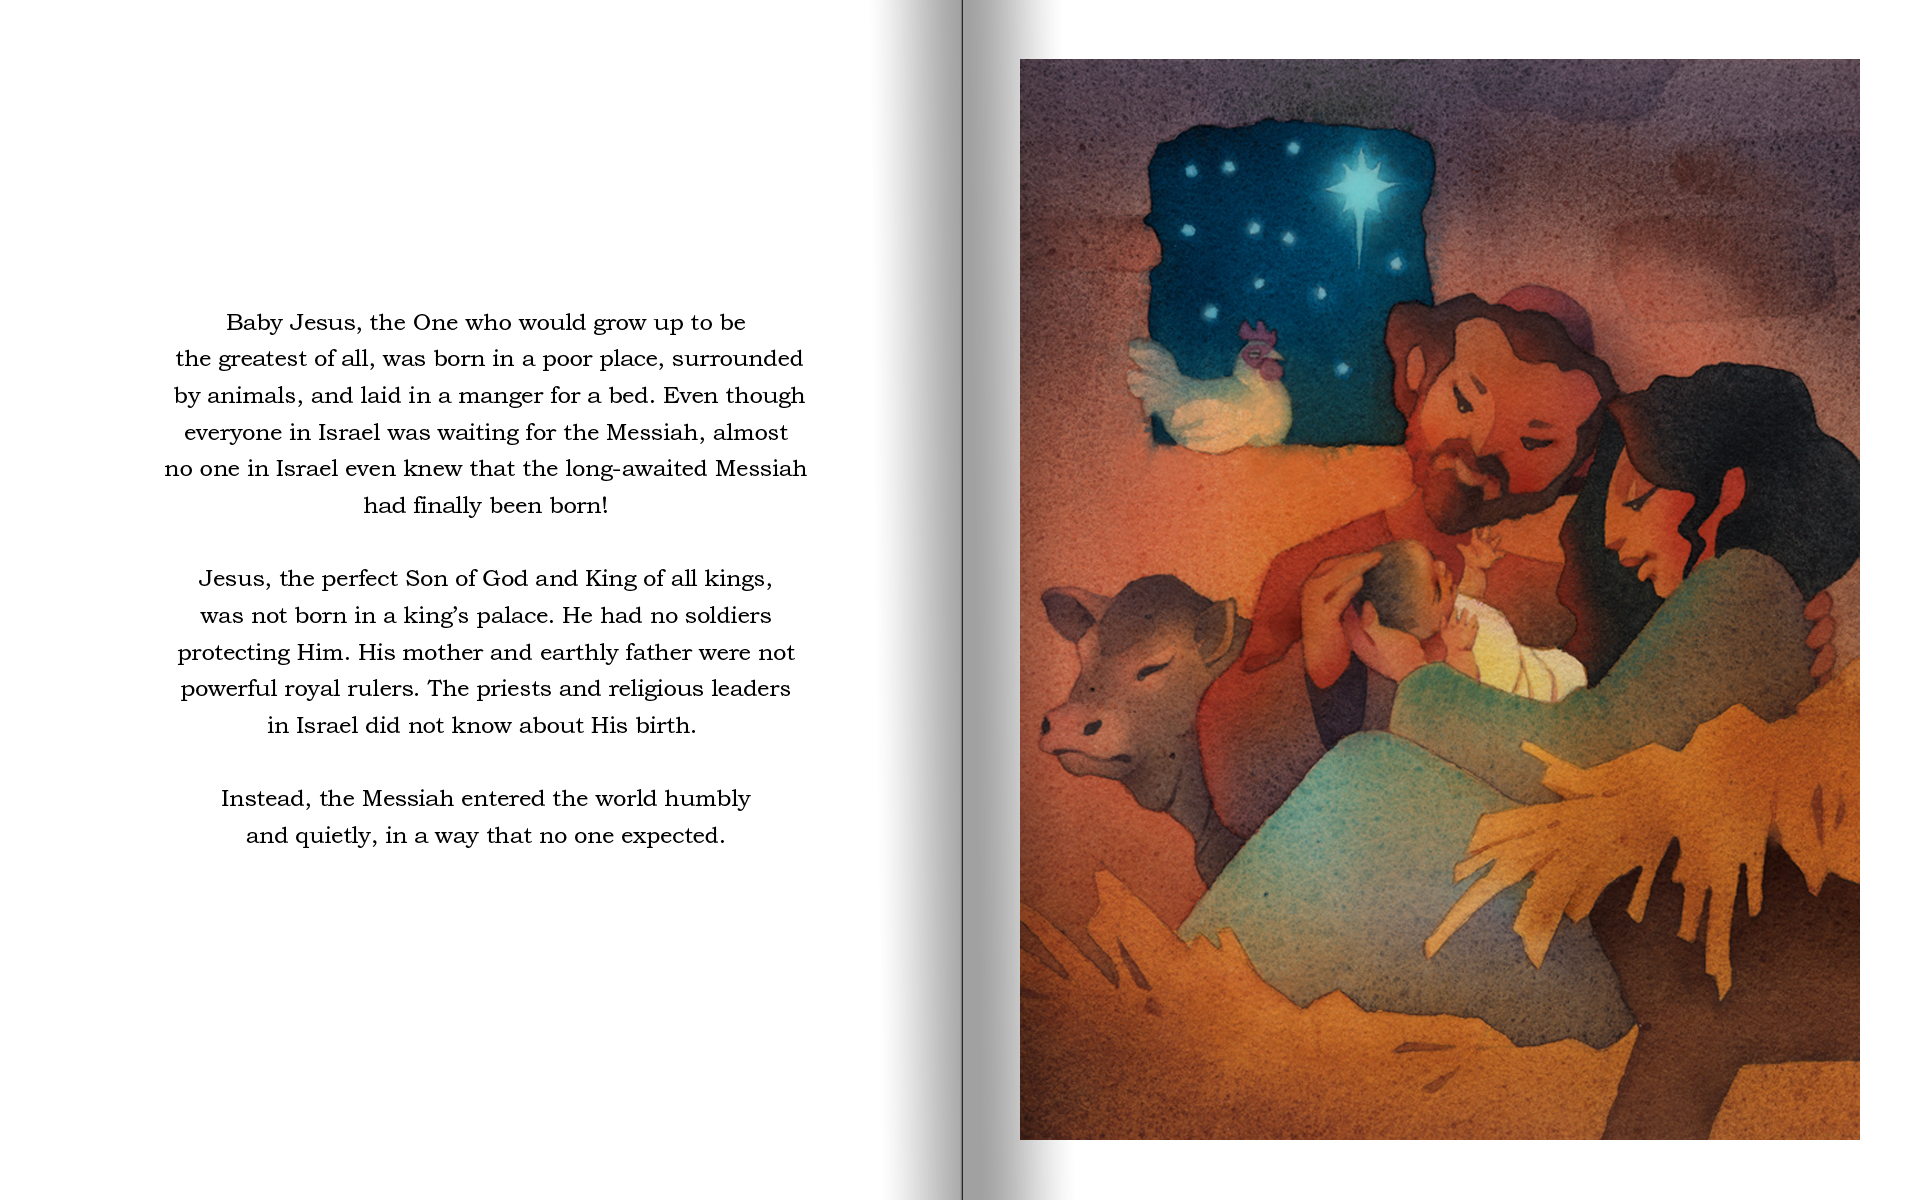 Birth of Jesus storybook-nativity scene